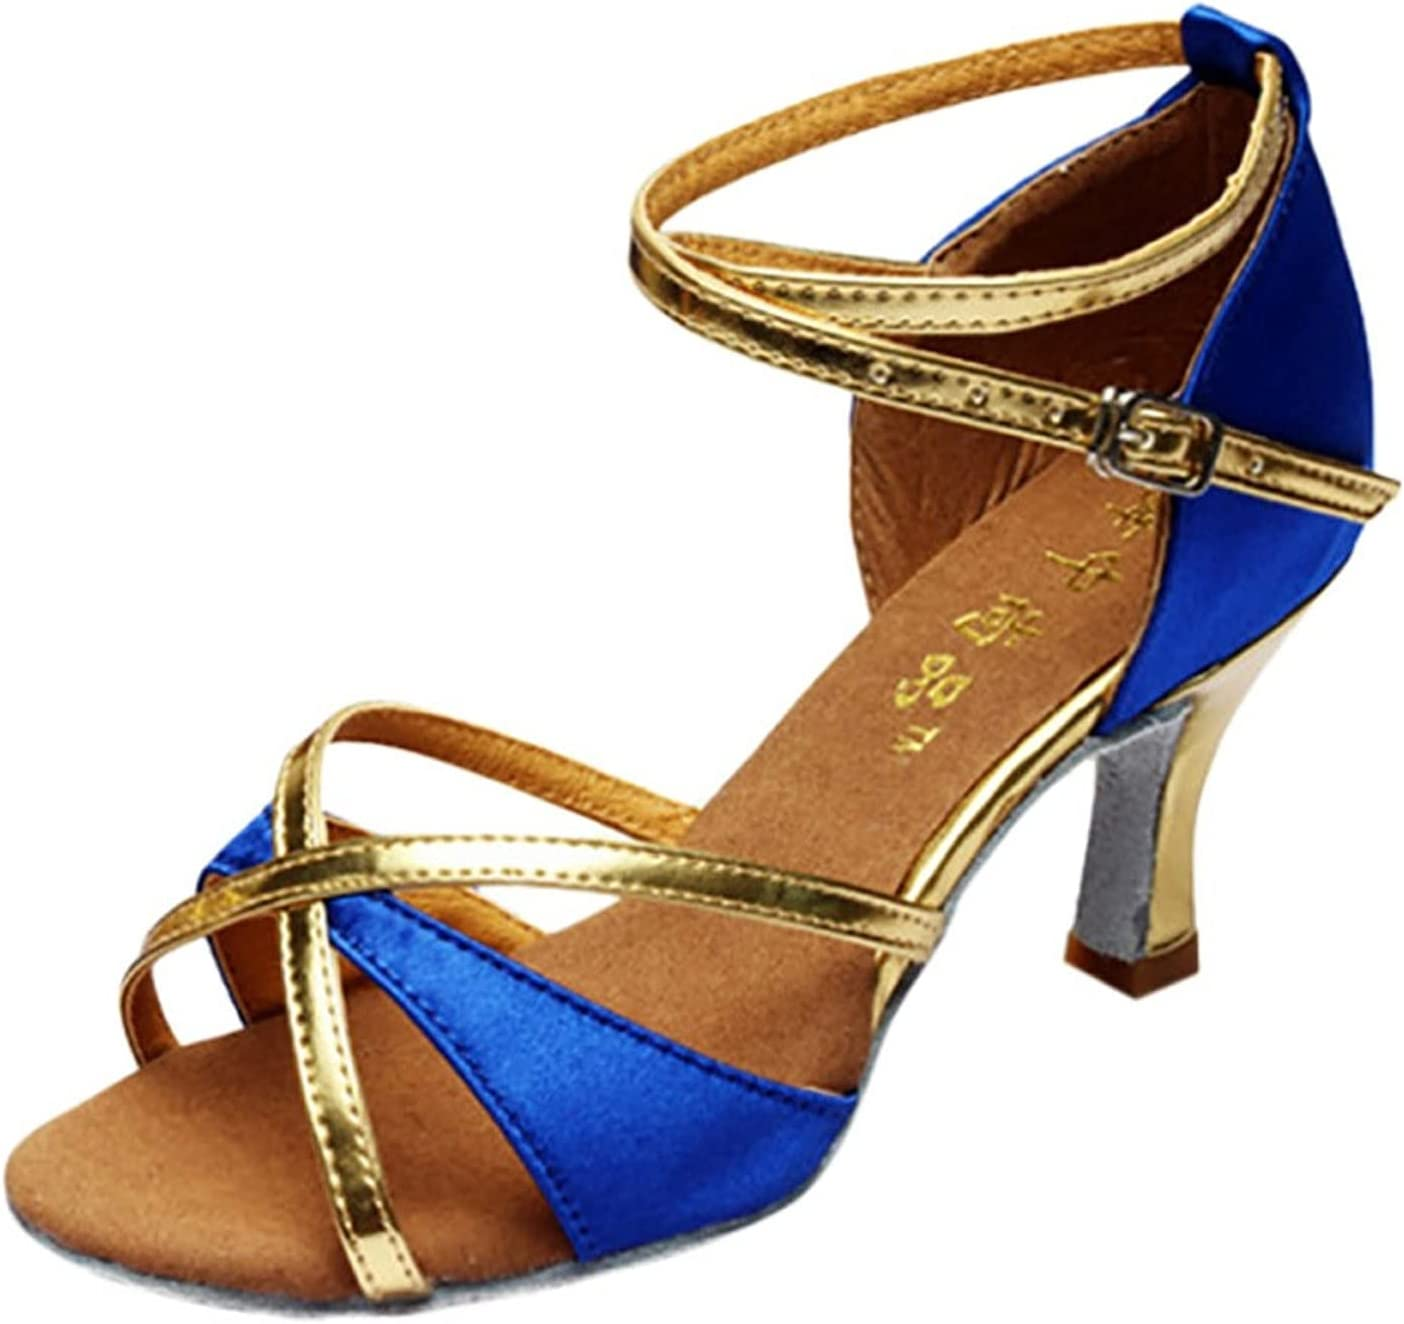 Sandals for Women Casual Summer Shoes Girl Latin Dance Shoes Med-Heels Satin Shoes Party Tango Dance Shoes